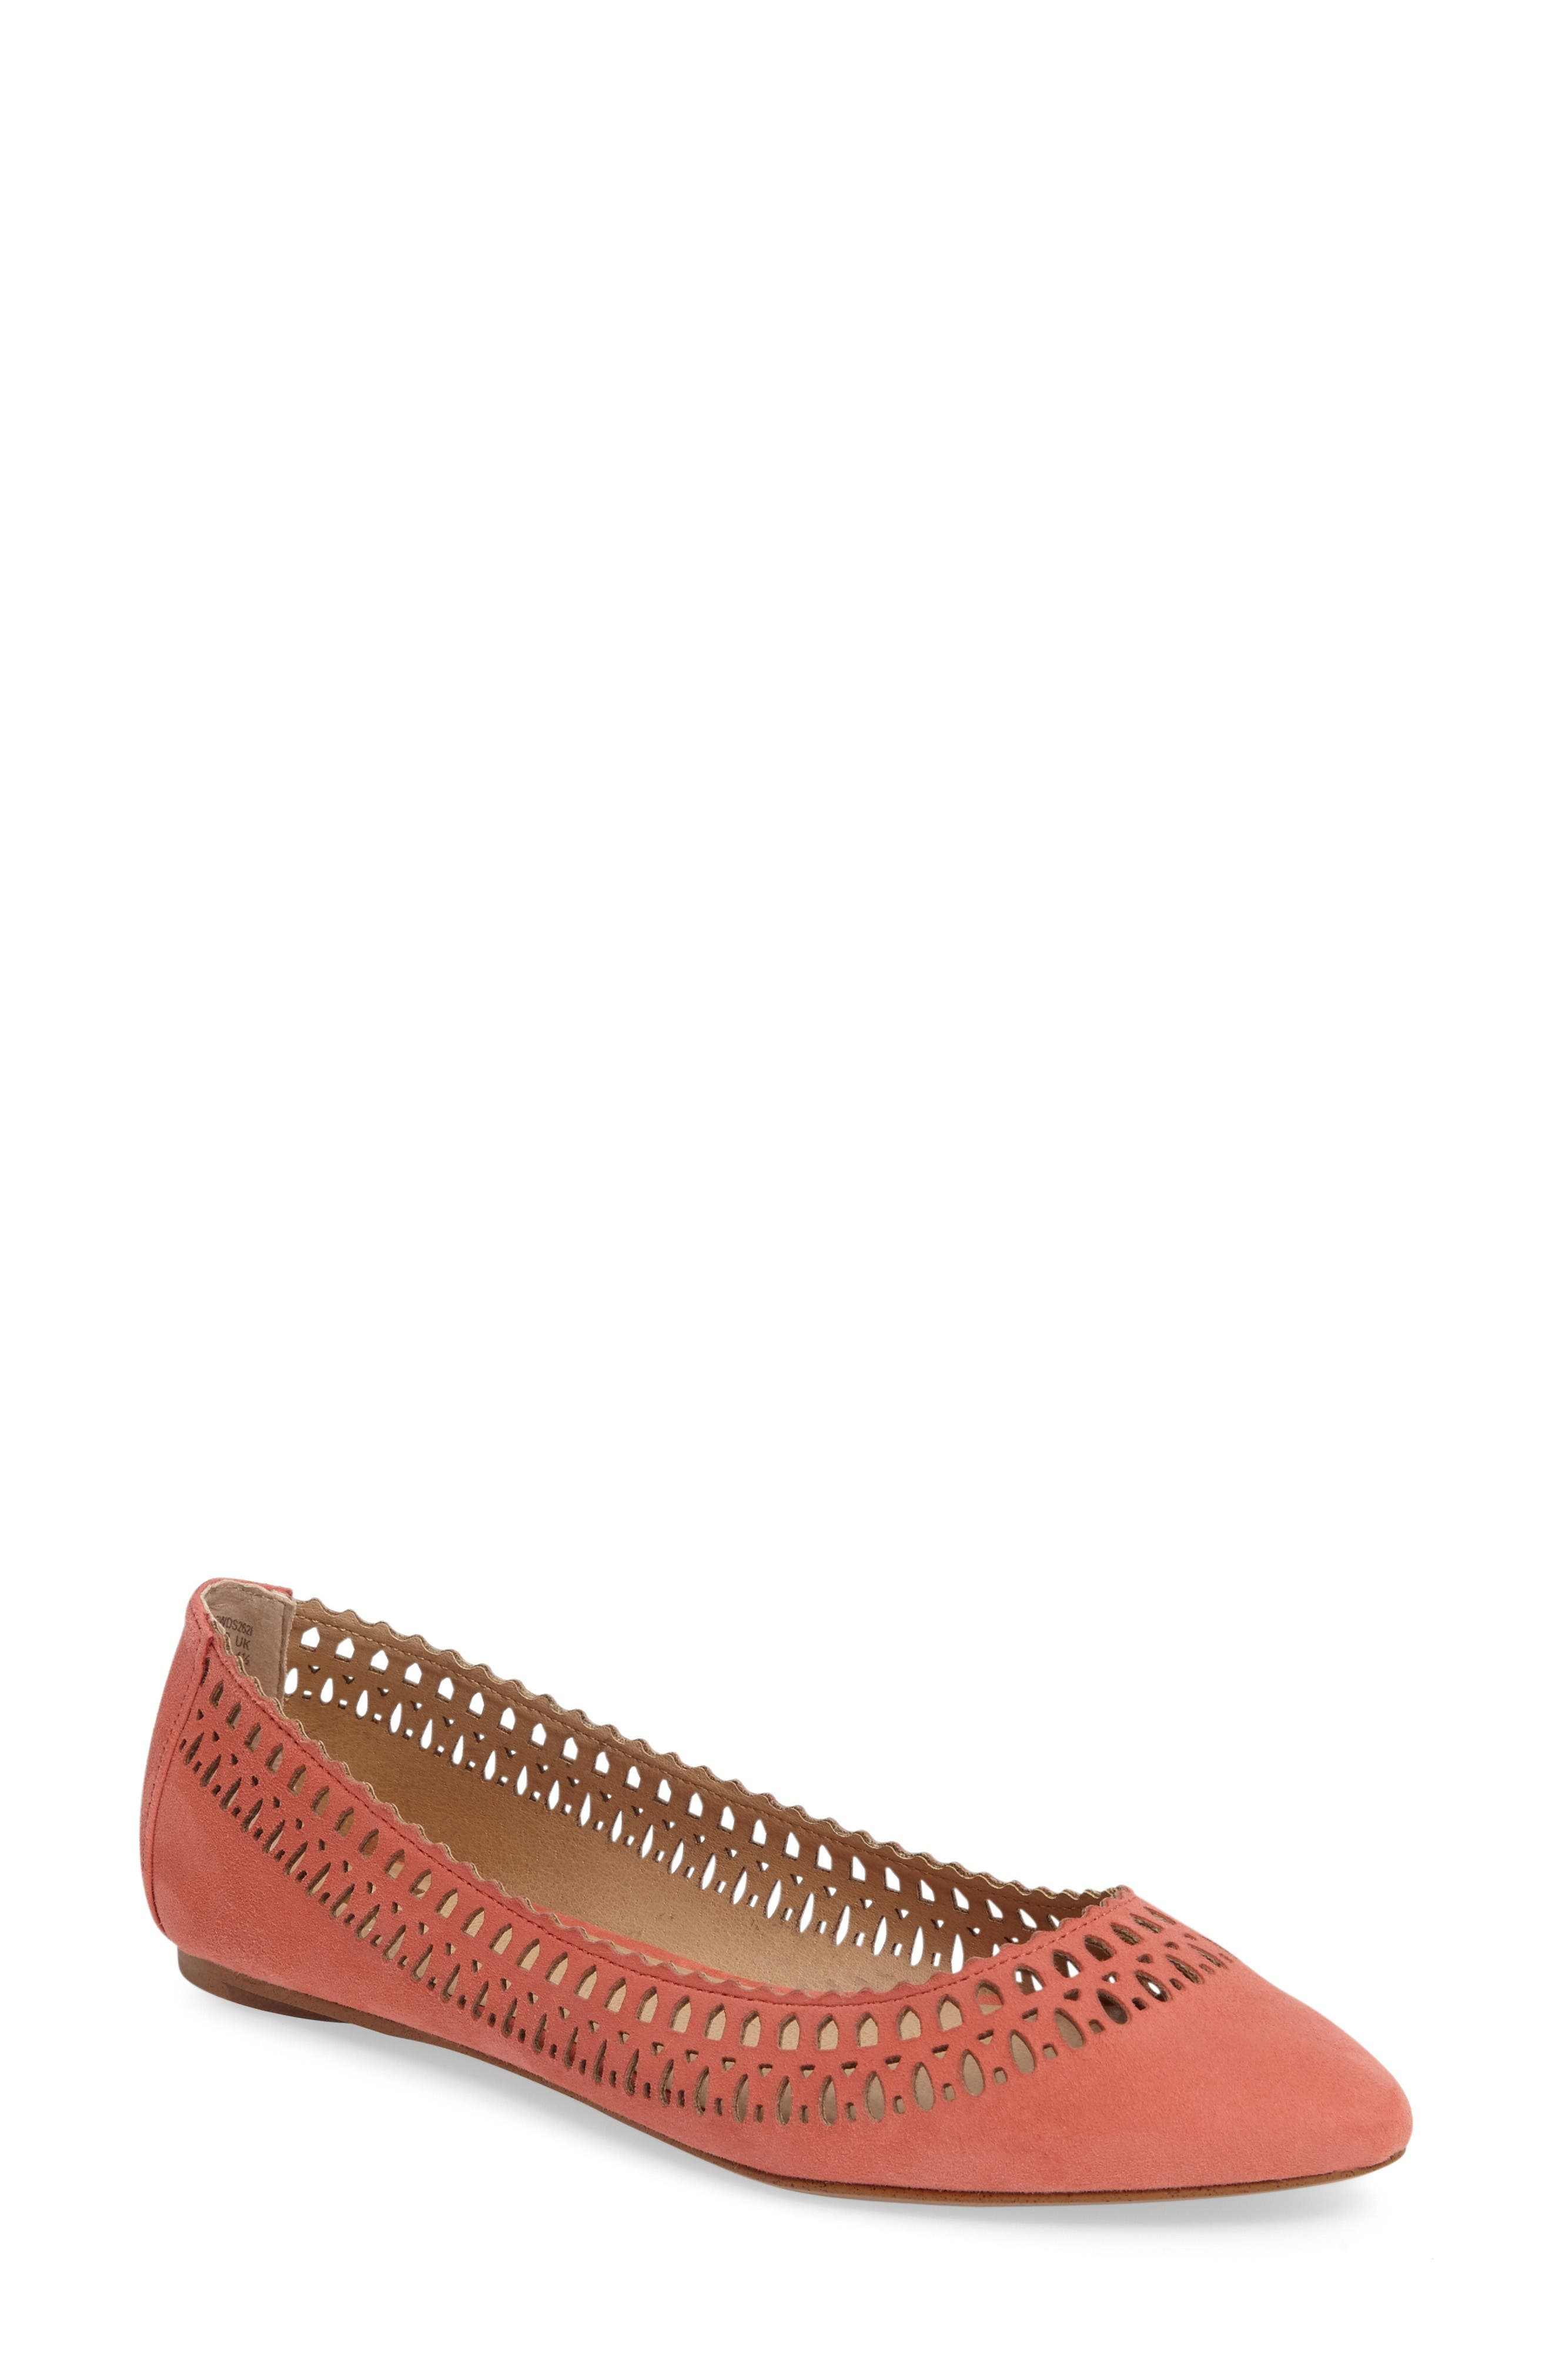 Cora Flat,                         Main,                         color, Adobe Leather